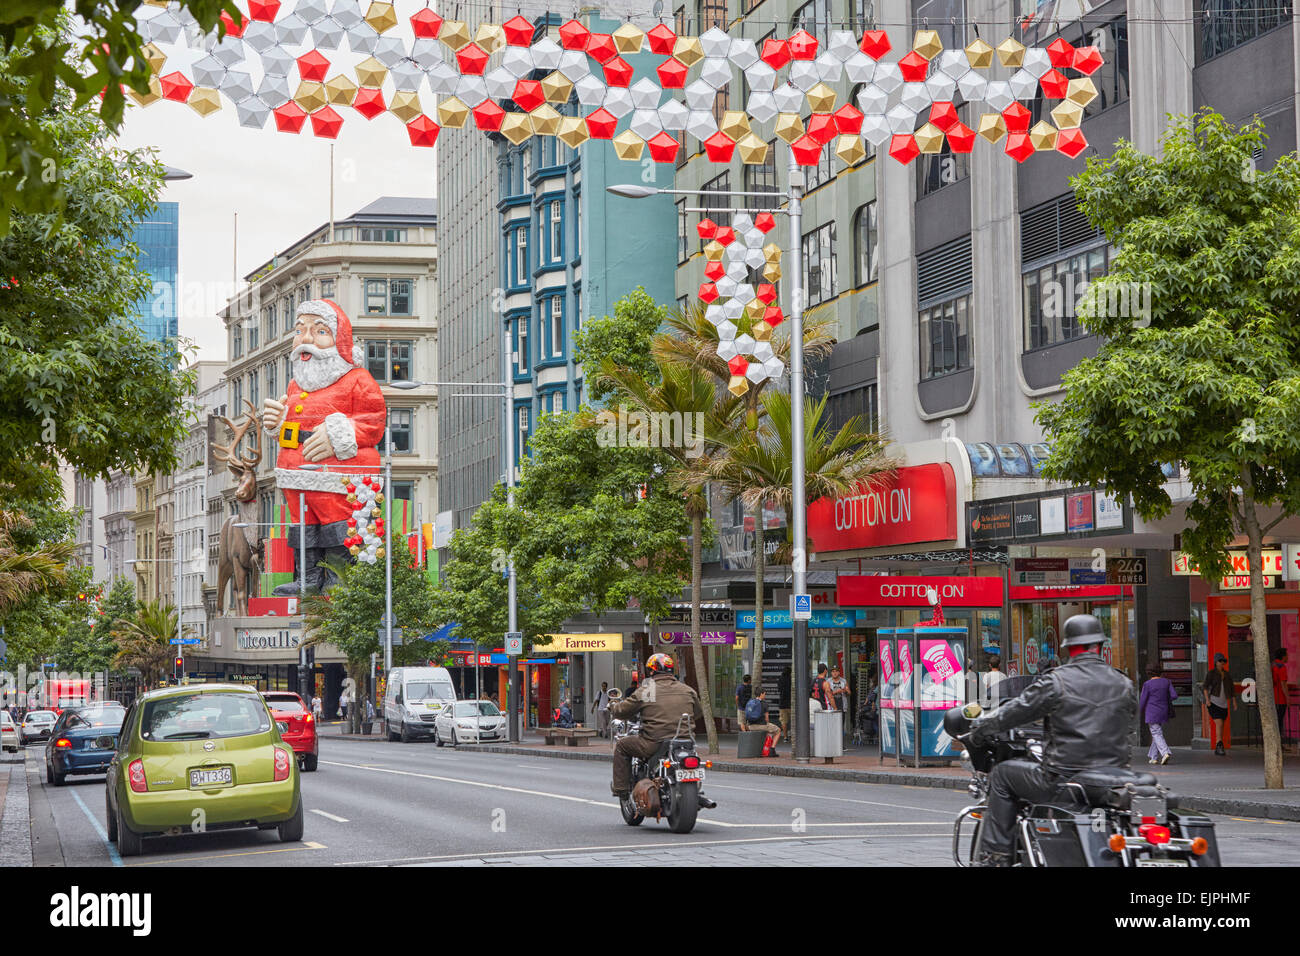 queen street christmas decorations auckland new zealand stock image - Queen Christmas Decorations